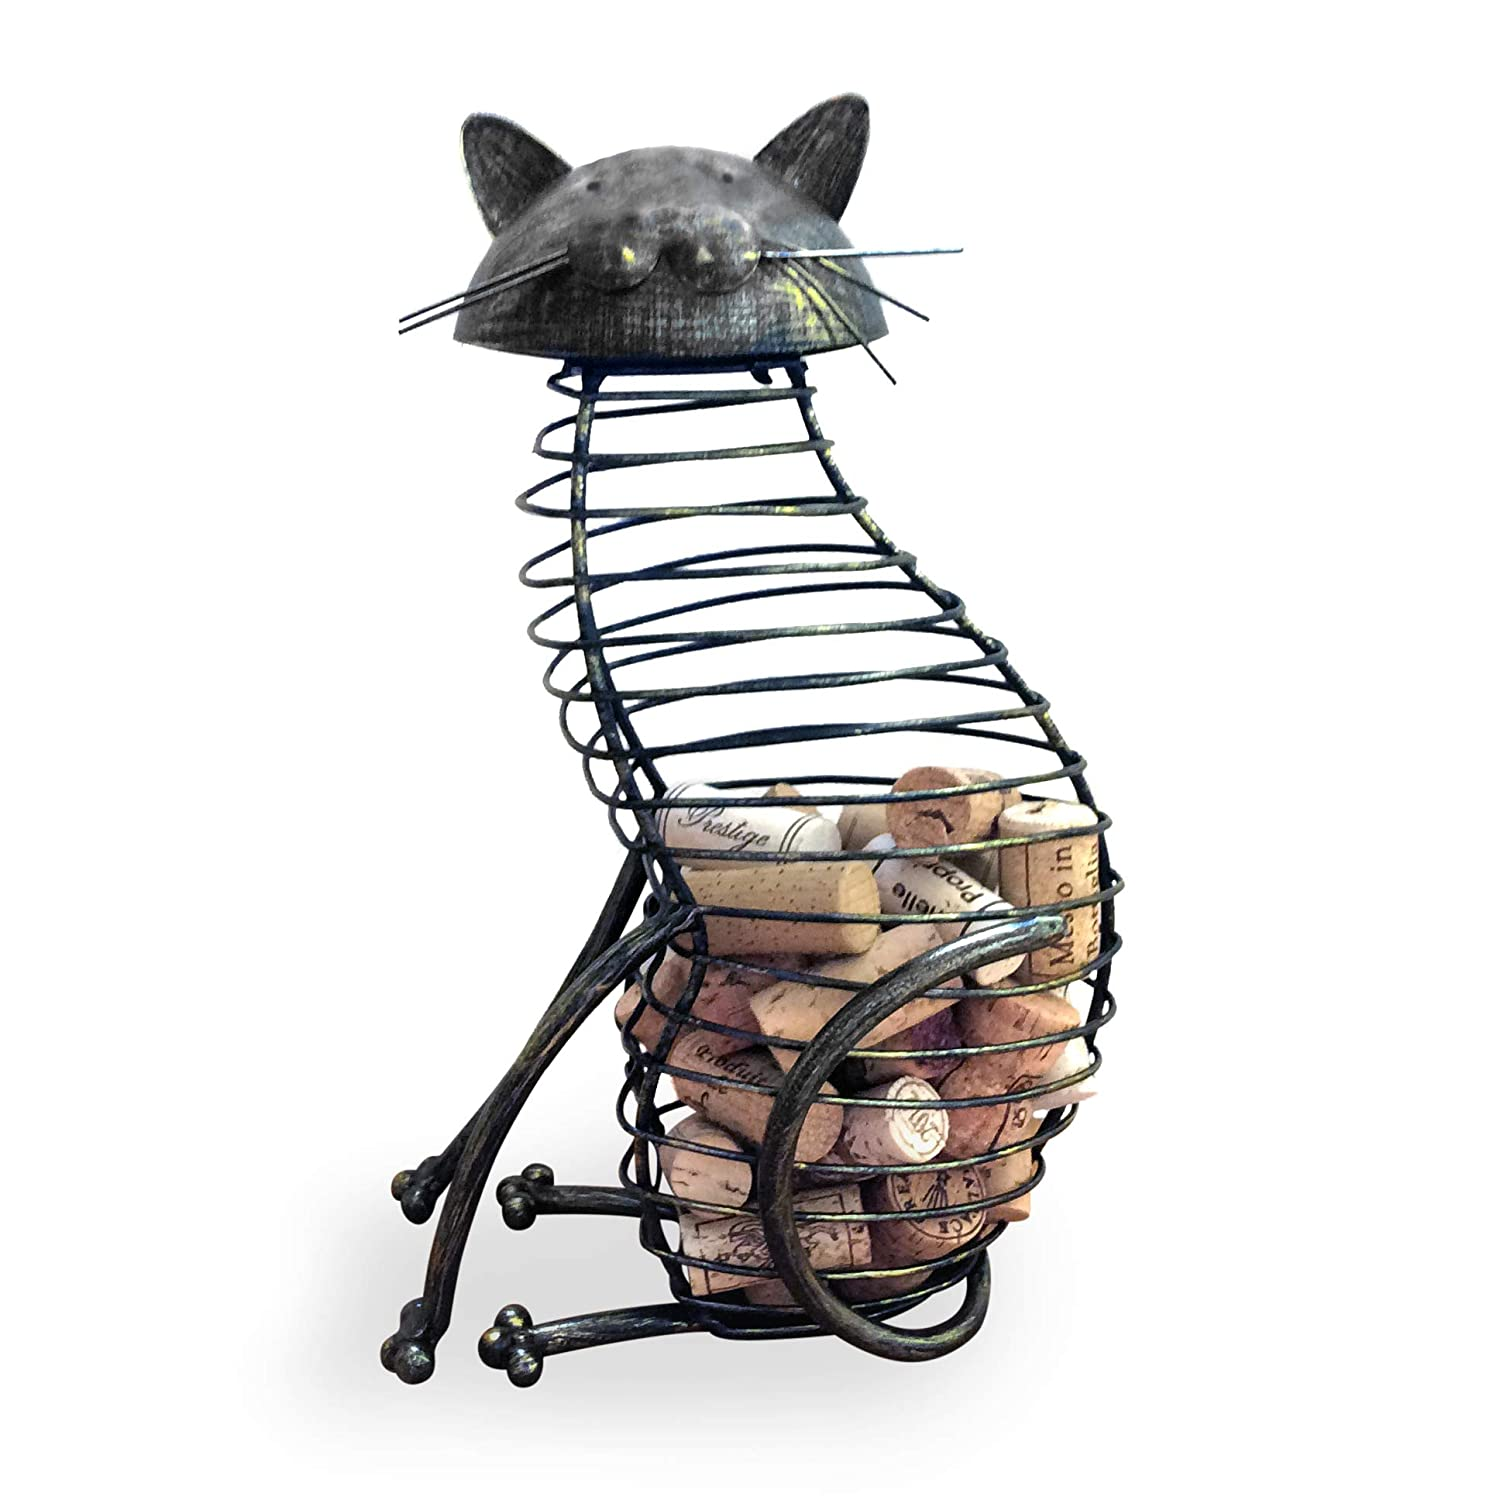 Wine Cork Holder A Decorative Wine Cork Holder Wine Barrel In The Shape Of A Elegant Metal Cat For Cat And Wine Lovers Great For Wine Corks Of